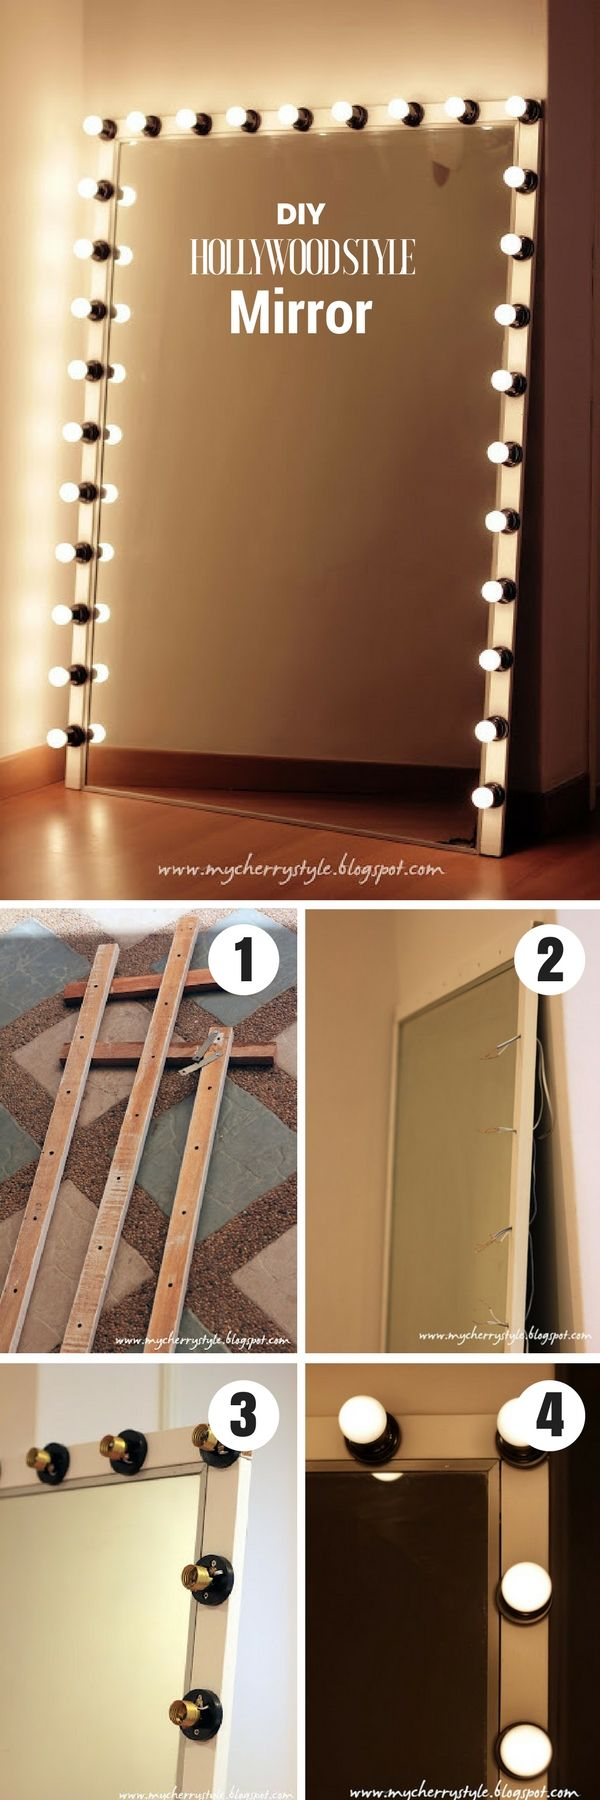 Light Bulb Vanity Mirror | Hollywood Vanity Mirror With Lights | Vanity Broadway Mirror